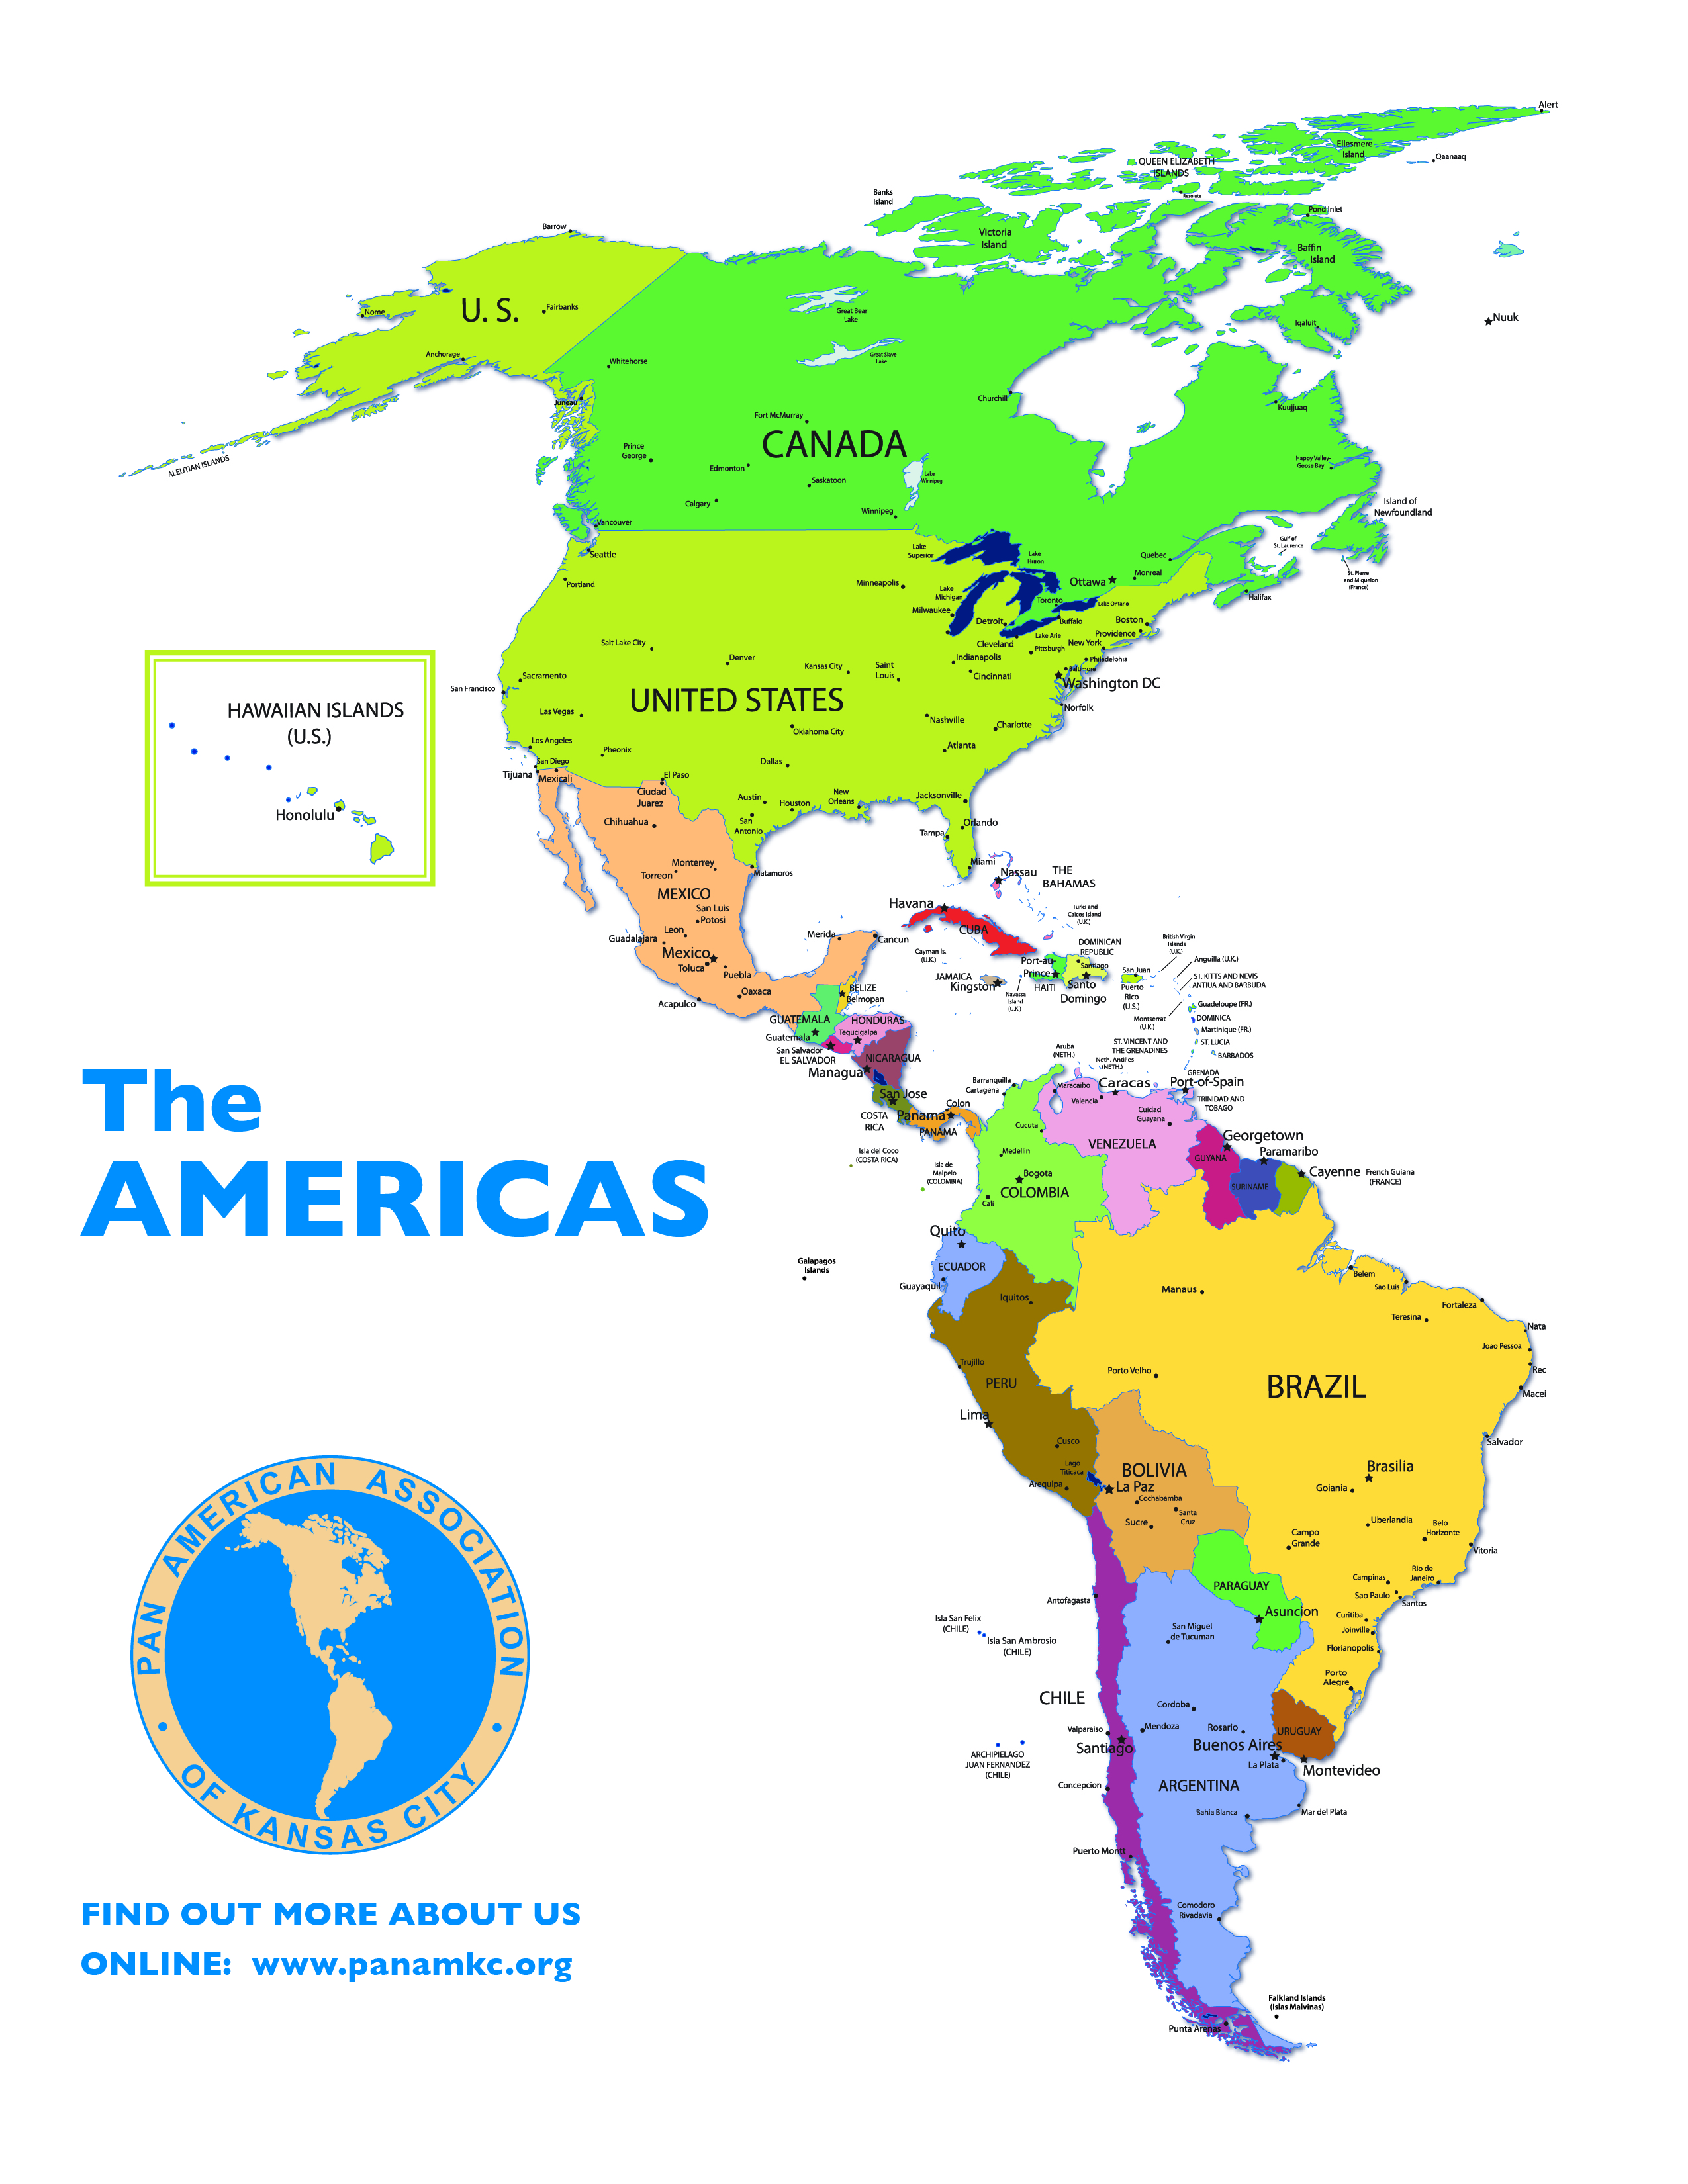 Maps : Pan American ociation of Kansas City Map Americas on america globe, america google earth, america activities, america text, incorporated territory, america hemisphere, america weather, america national anthem, u.s. county, america logo, america atlas, indian reservation, america acronym, america area, america vector, america city, america continent, america shopping, america attractions, america people, america art, america outline, united states territory, contiguous united states, america water bottle,